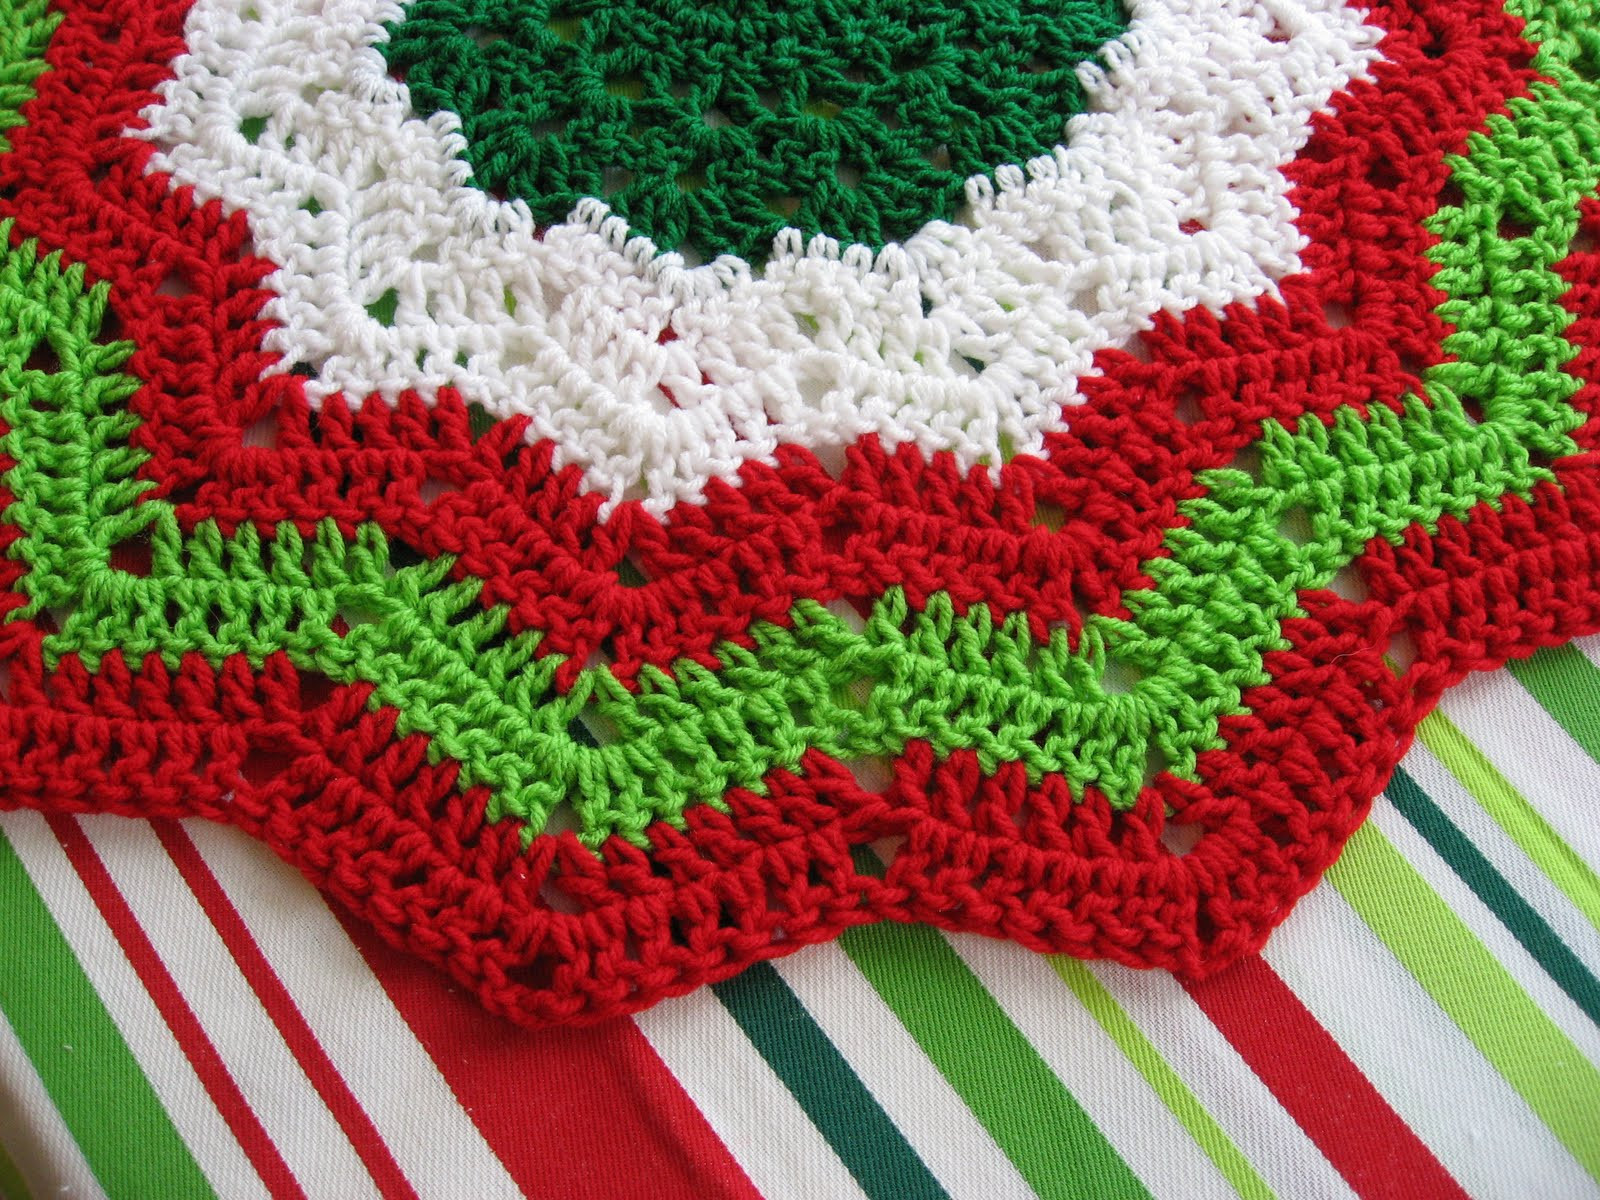 New Crocheted Christmas Tree Skirt Patterns – Crochet Club Free Crochet Christmas Tree ornament Patterns Of Awesome 44 Ideas Free Crochet Christmas Tree ornament Patterns